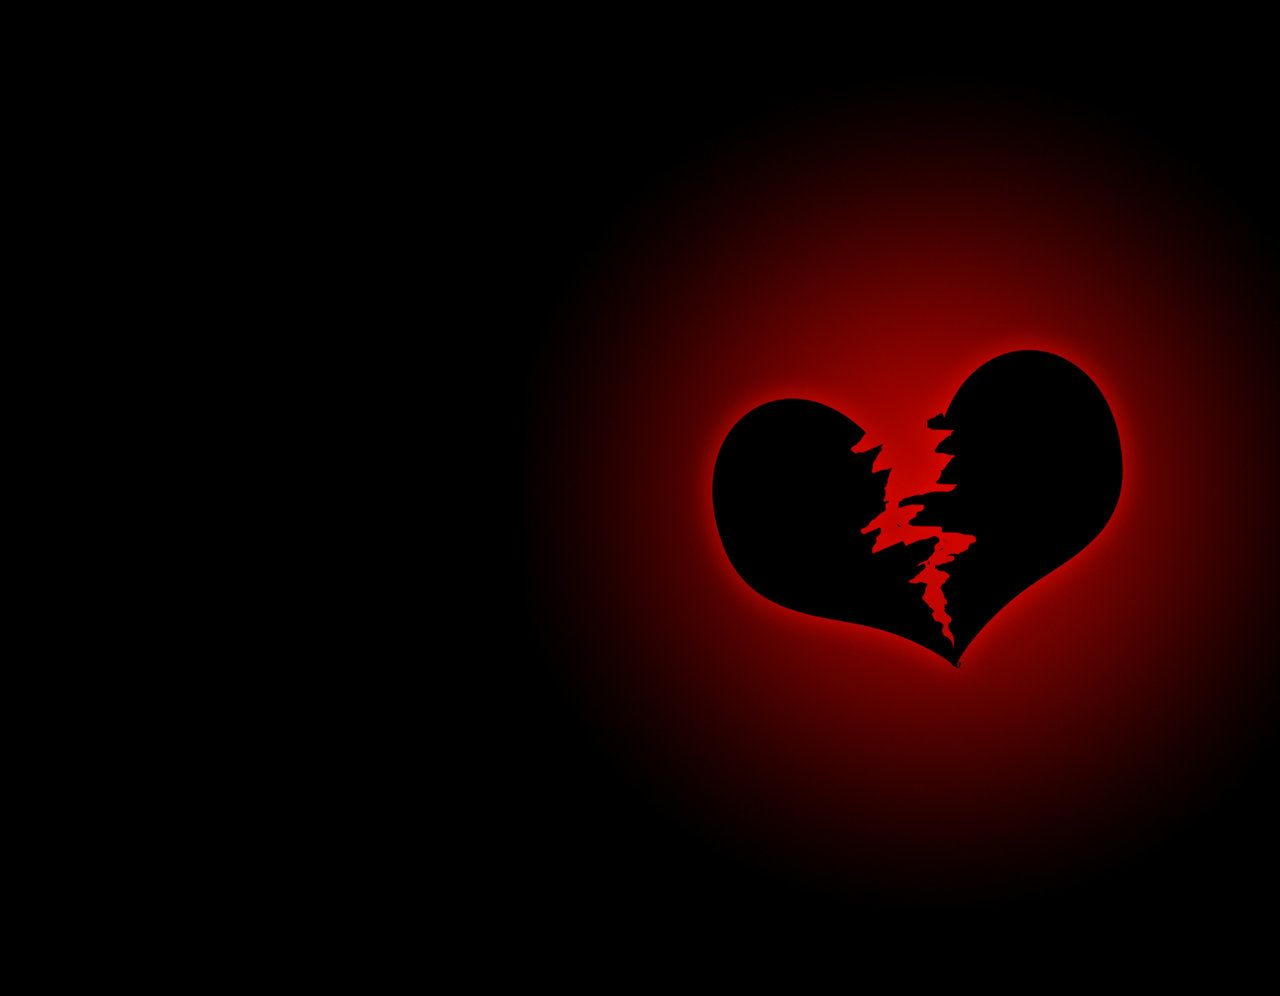 Hd Love Wallpaper For Pc 1080p : Broken hearts wallpaper #97985 at Love Wallpapers 1080p HD ... Broken Heart Pinterest ...